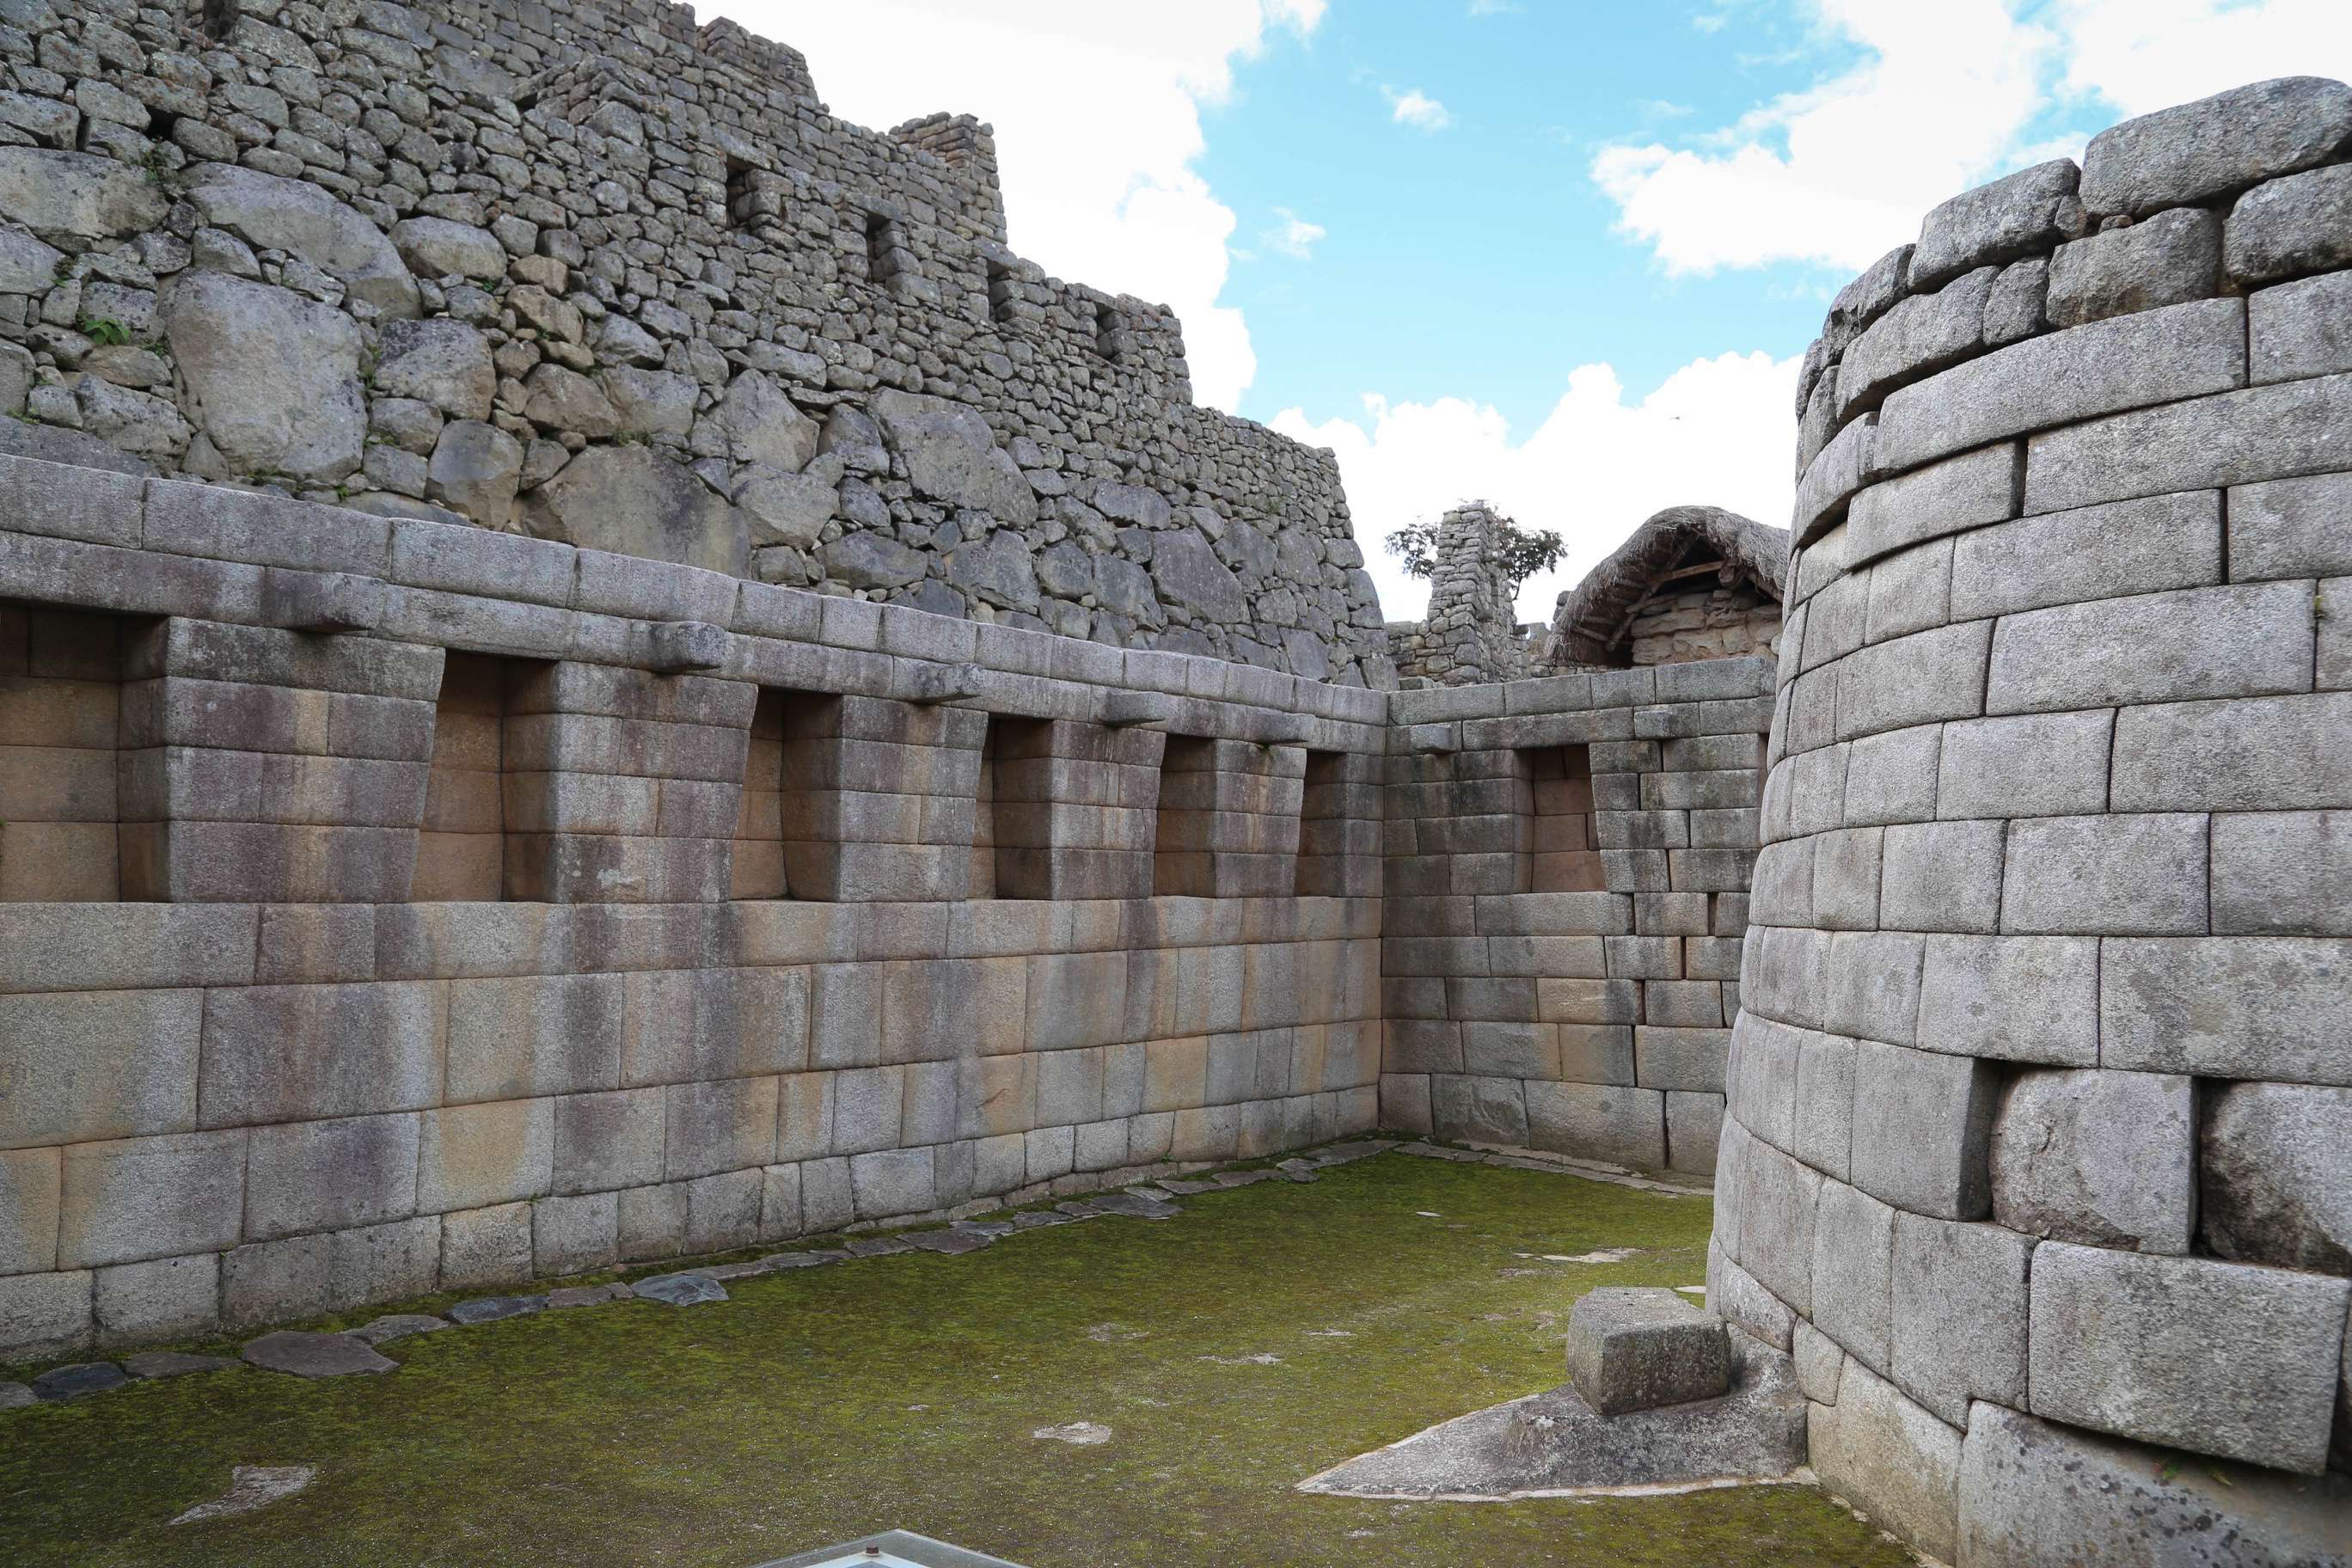 Most of Machu Picchu has been reconstructed and the difference between the stonework of the Incas and their modern-day relatives is easy to see, with the near-perfect stones on the bottom and the looser fit of the restored stones.